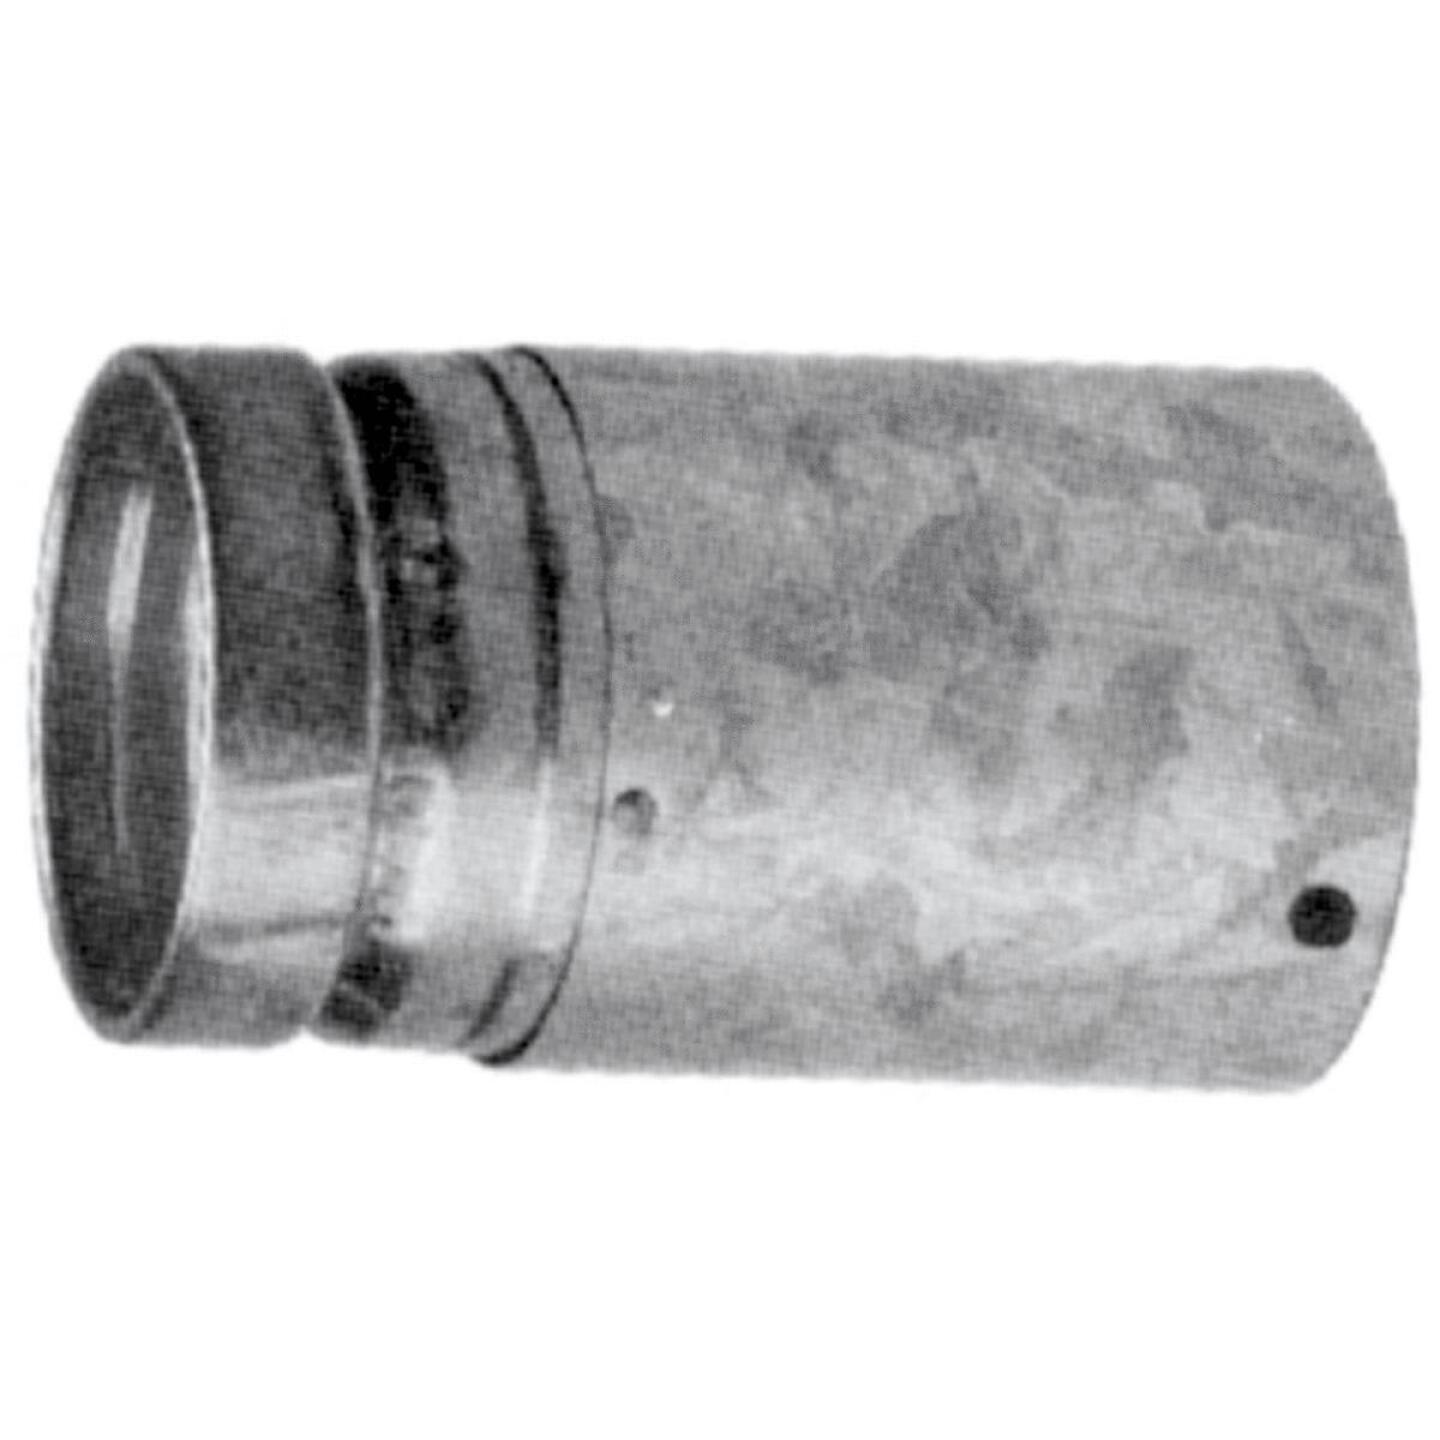 SELKIRK RV 3 In. x 18 In. Adjustable Round Gas Vent Pipe Image 1